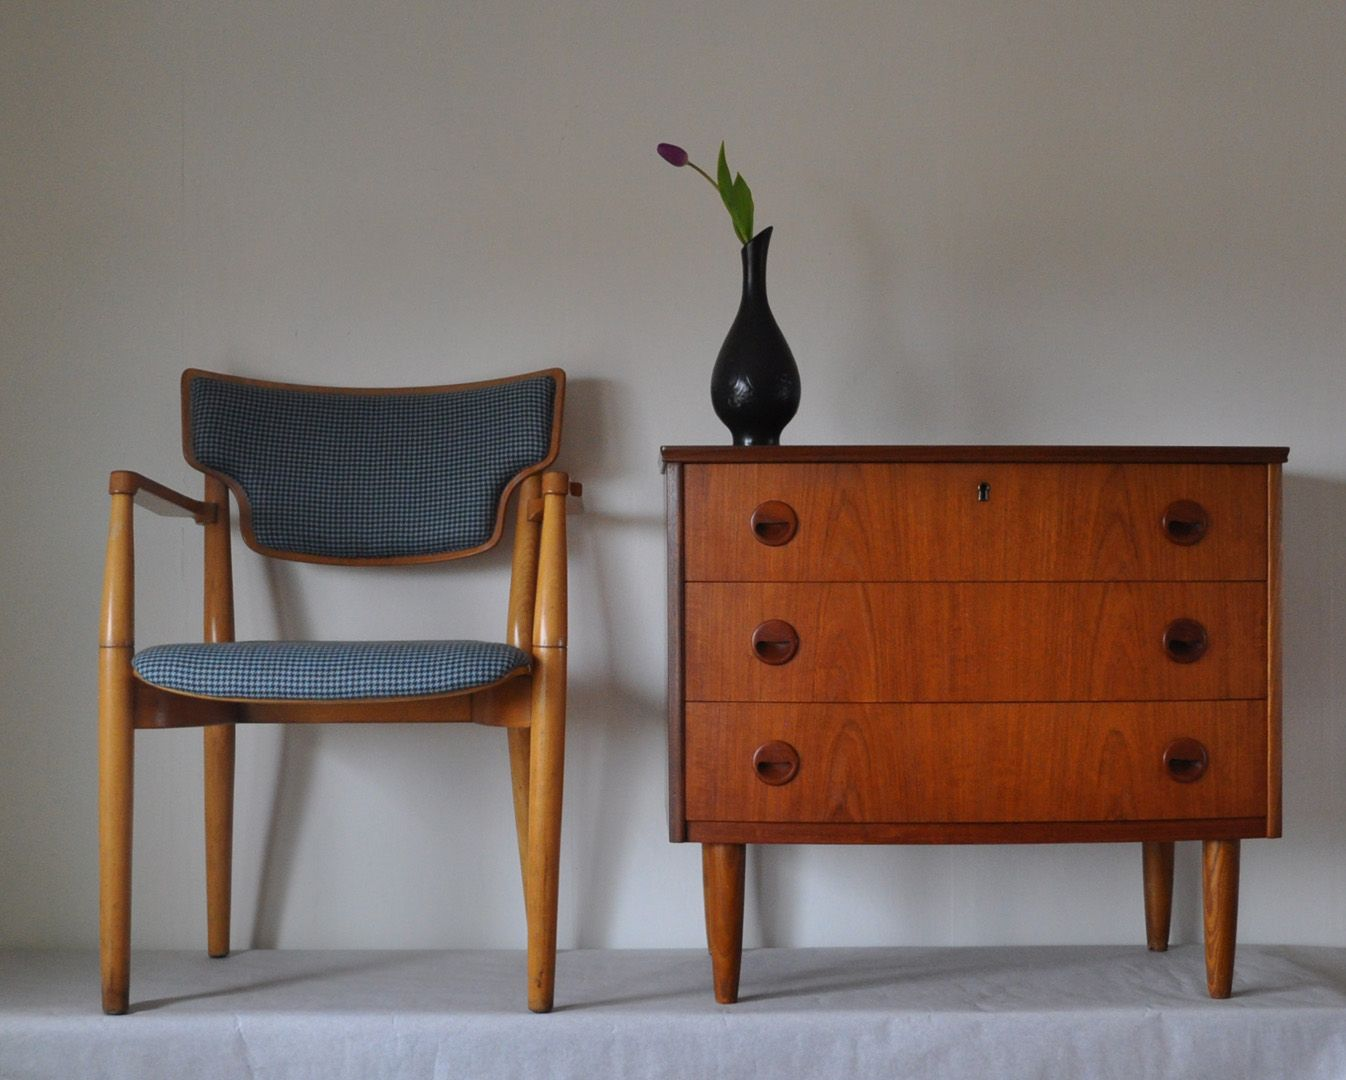 Teak chest of drawers with three drawers. Produced by a